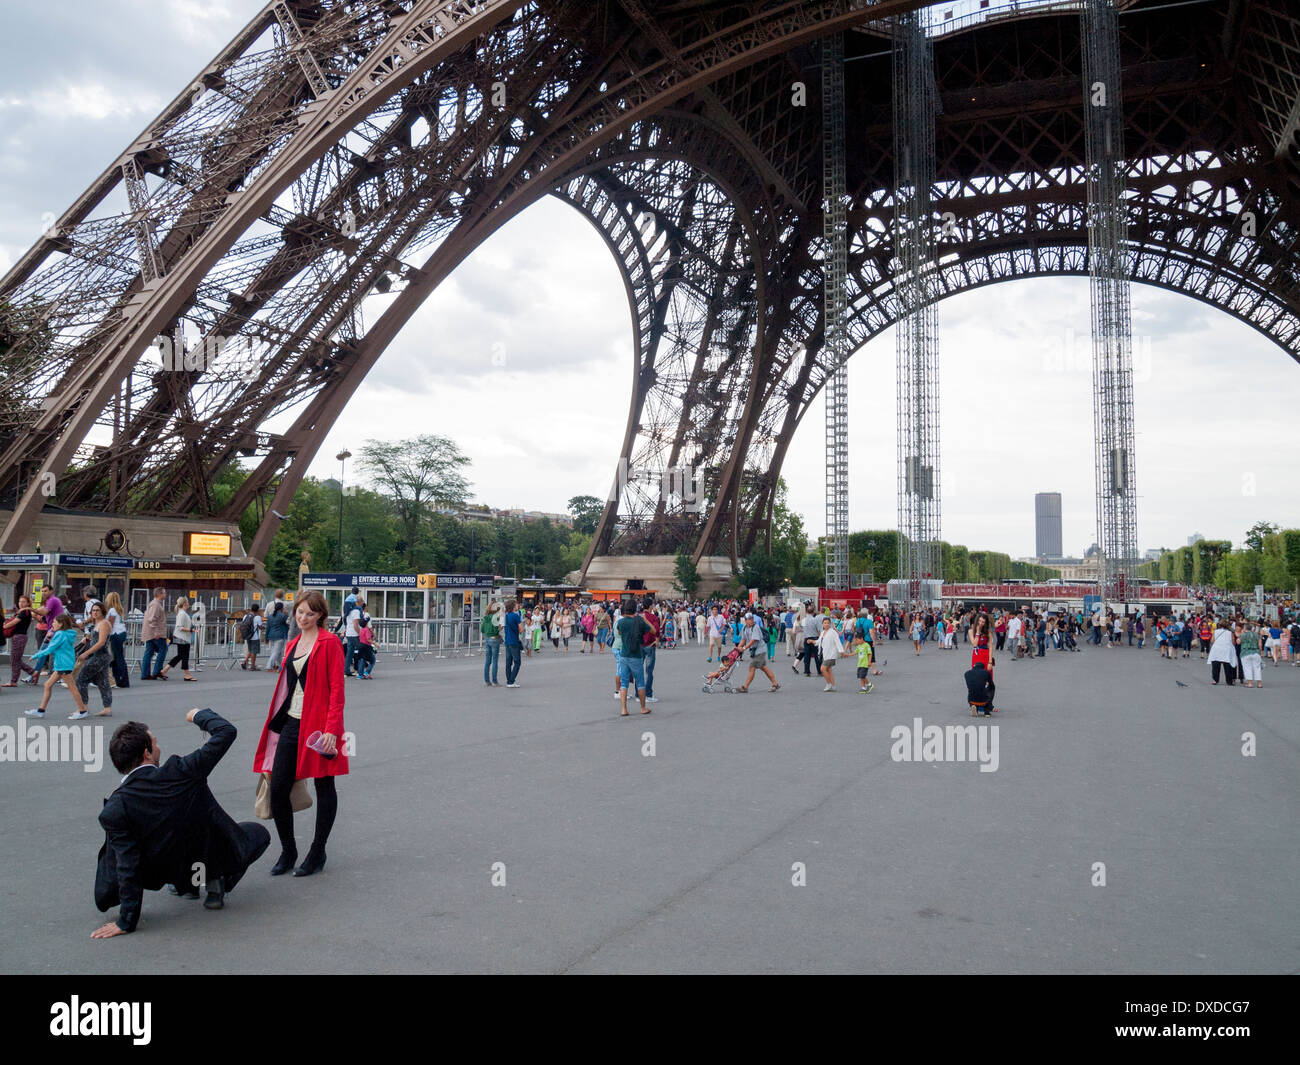 Eiffel Tower in Paris France. Man taking photograph of girlfriend. - Stock Image